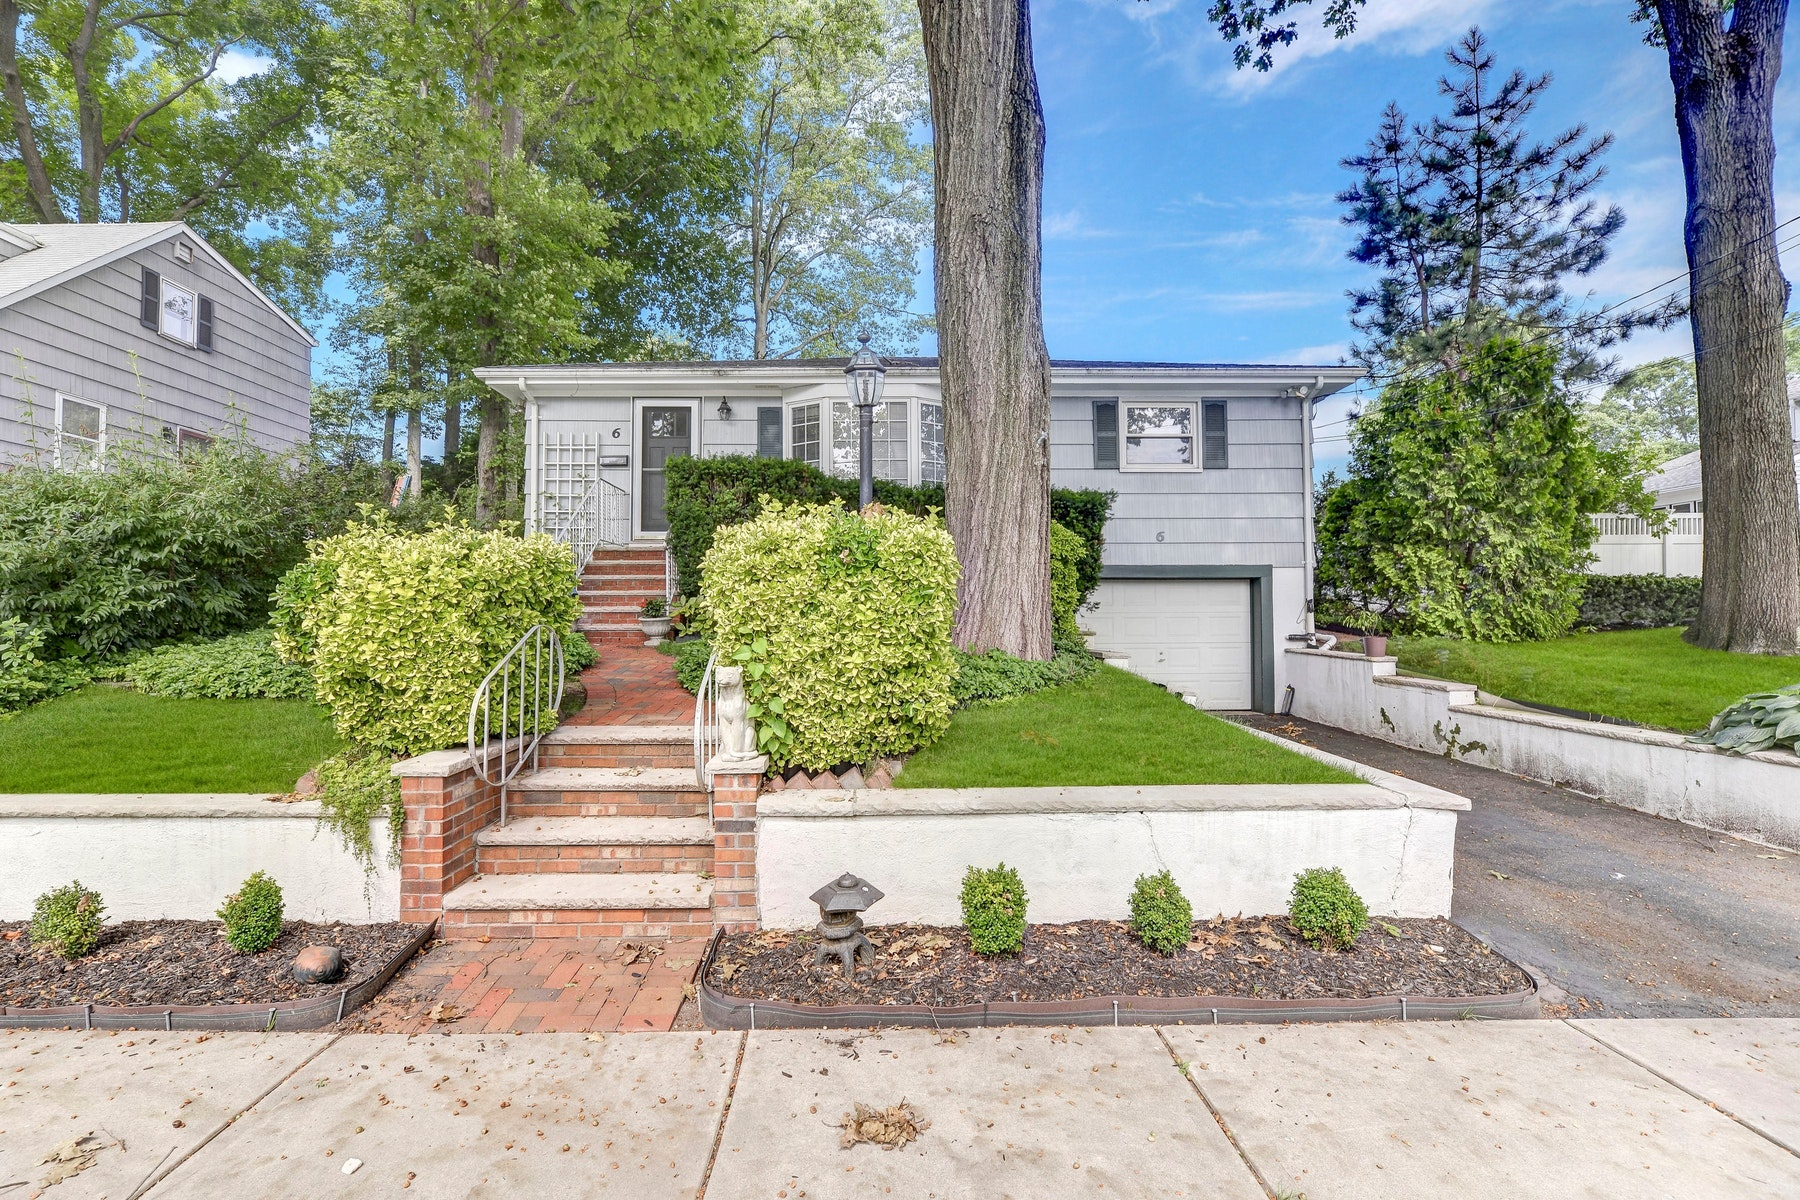 Single Family Homes for Sale at One Floor Living! 6 Brady Street Waldwick, New Jersey 07463 United States